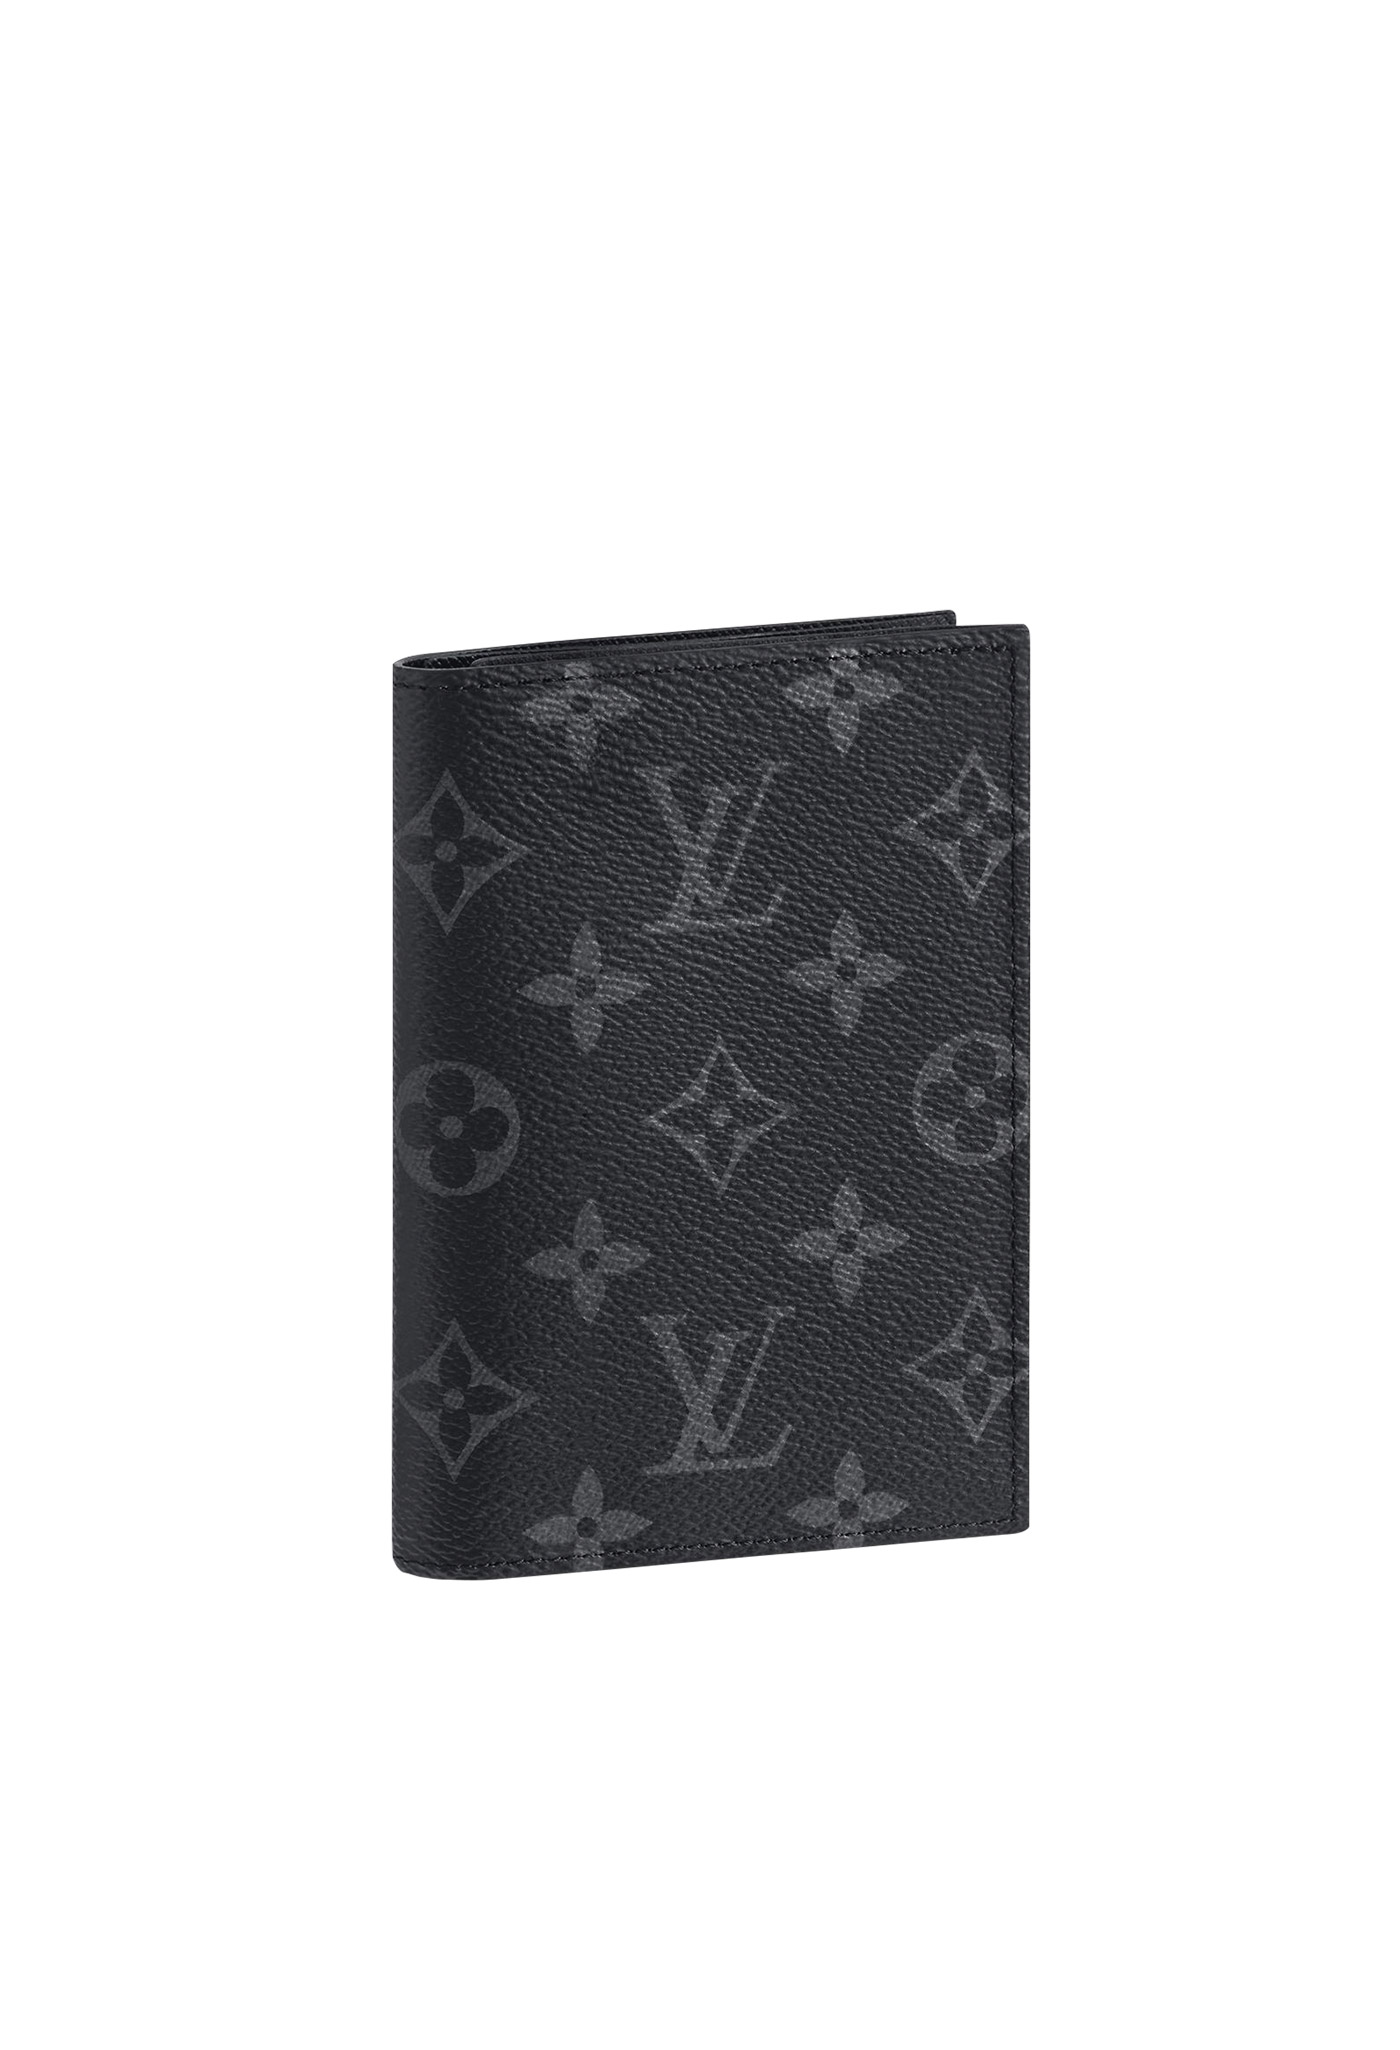 pasaporte_louis_vuitton_gadget_viaje_revista_mine